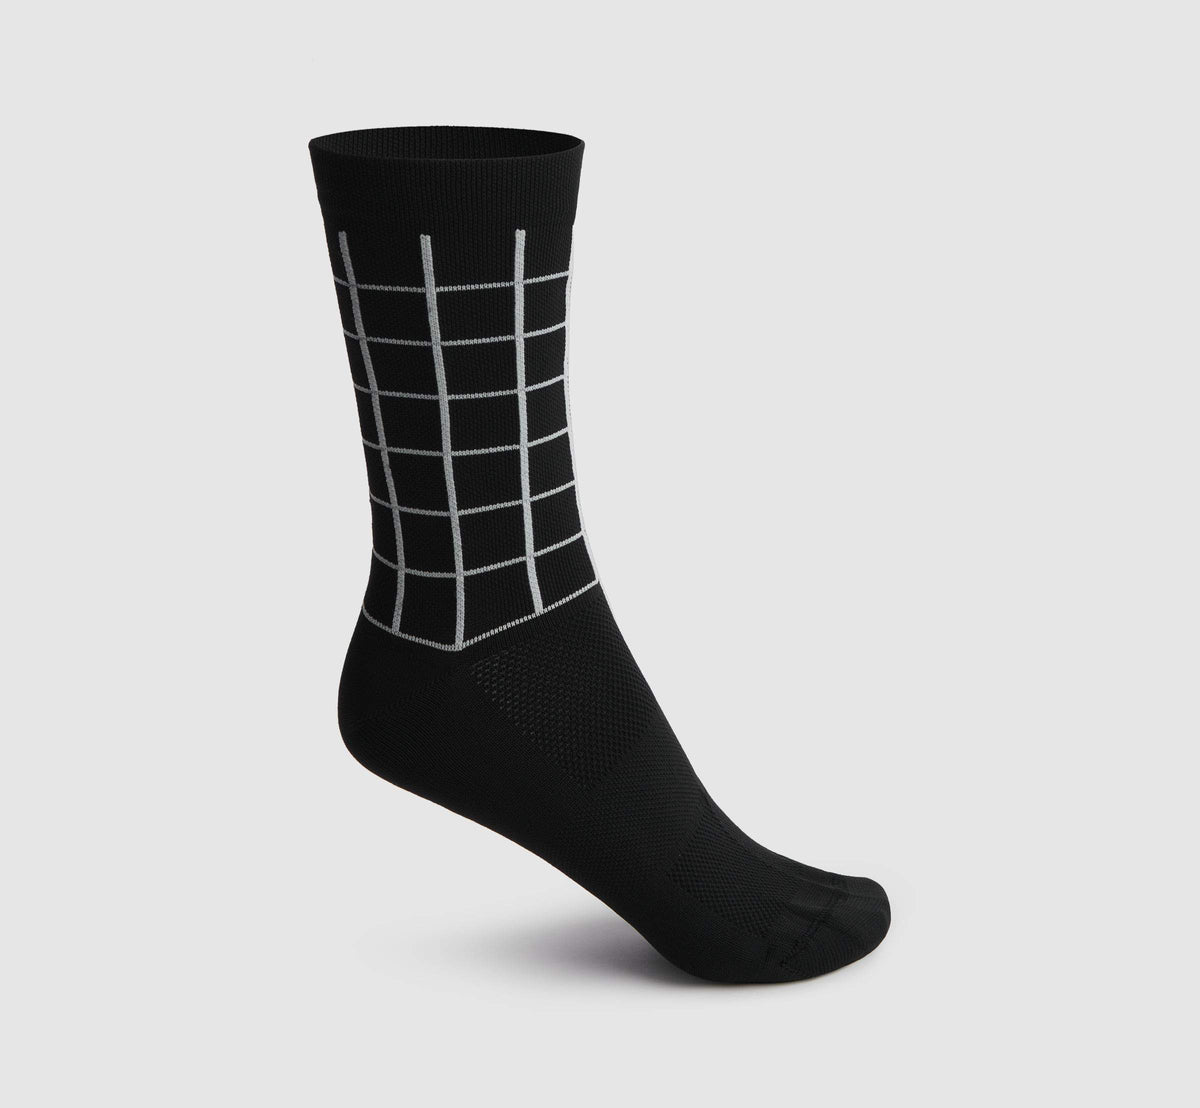 Square Socks Black